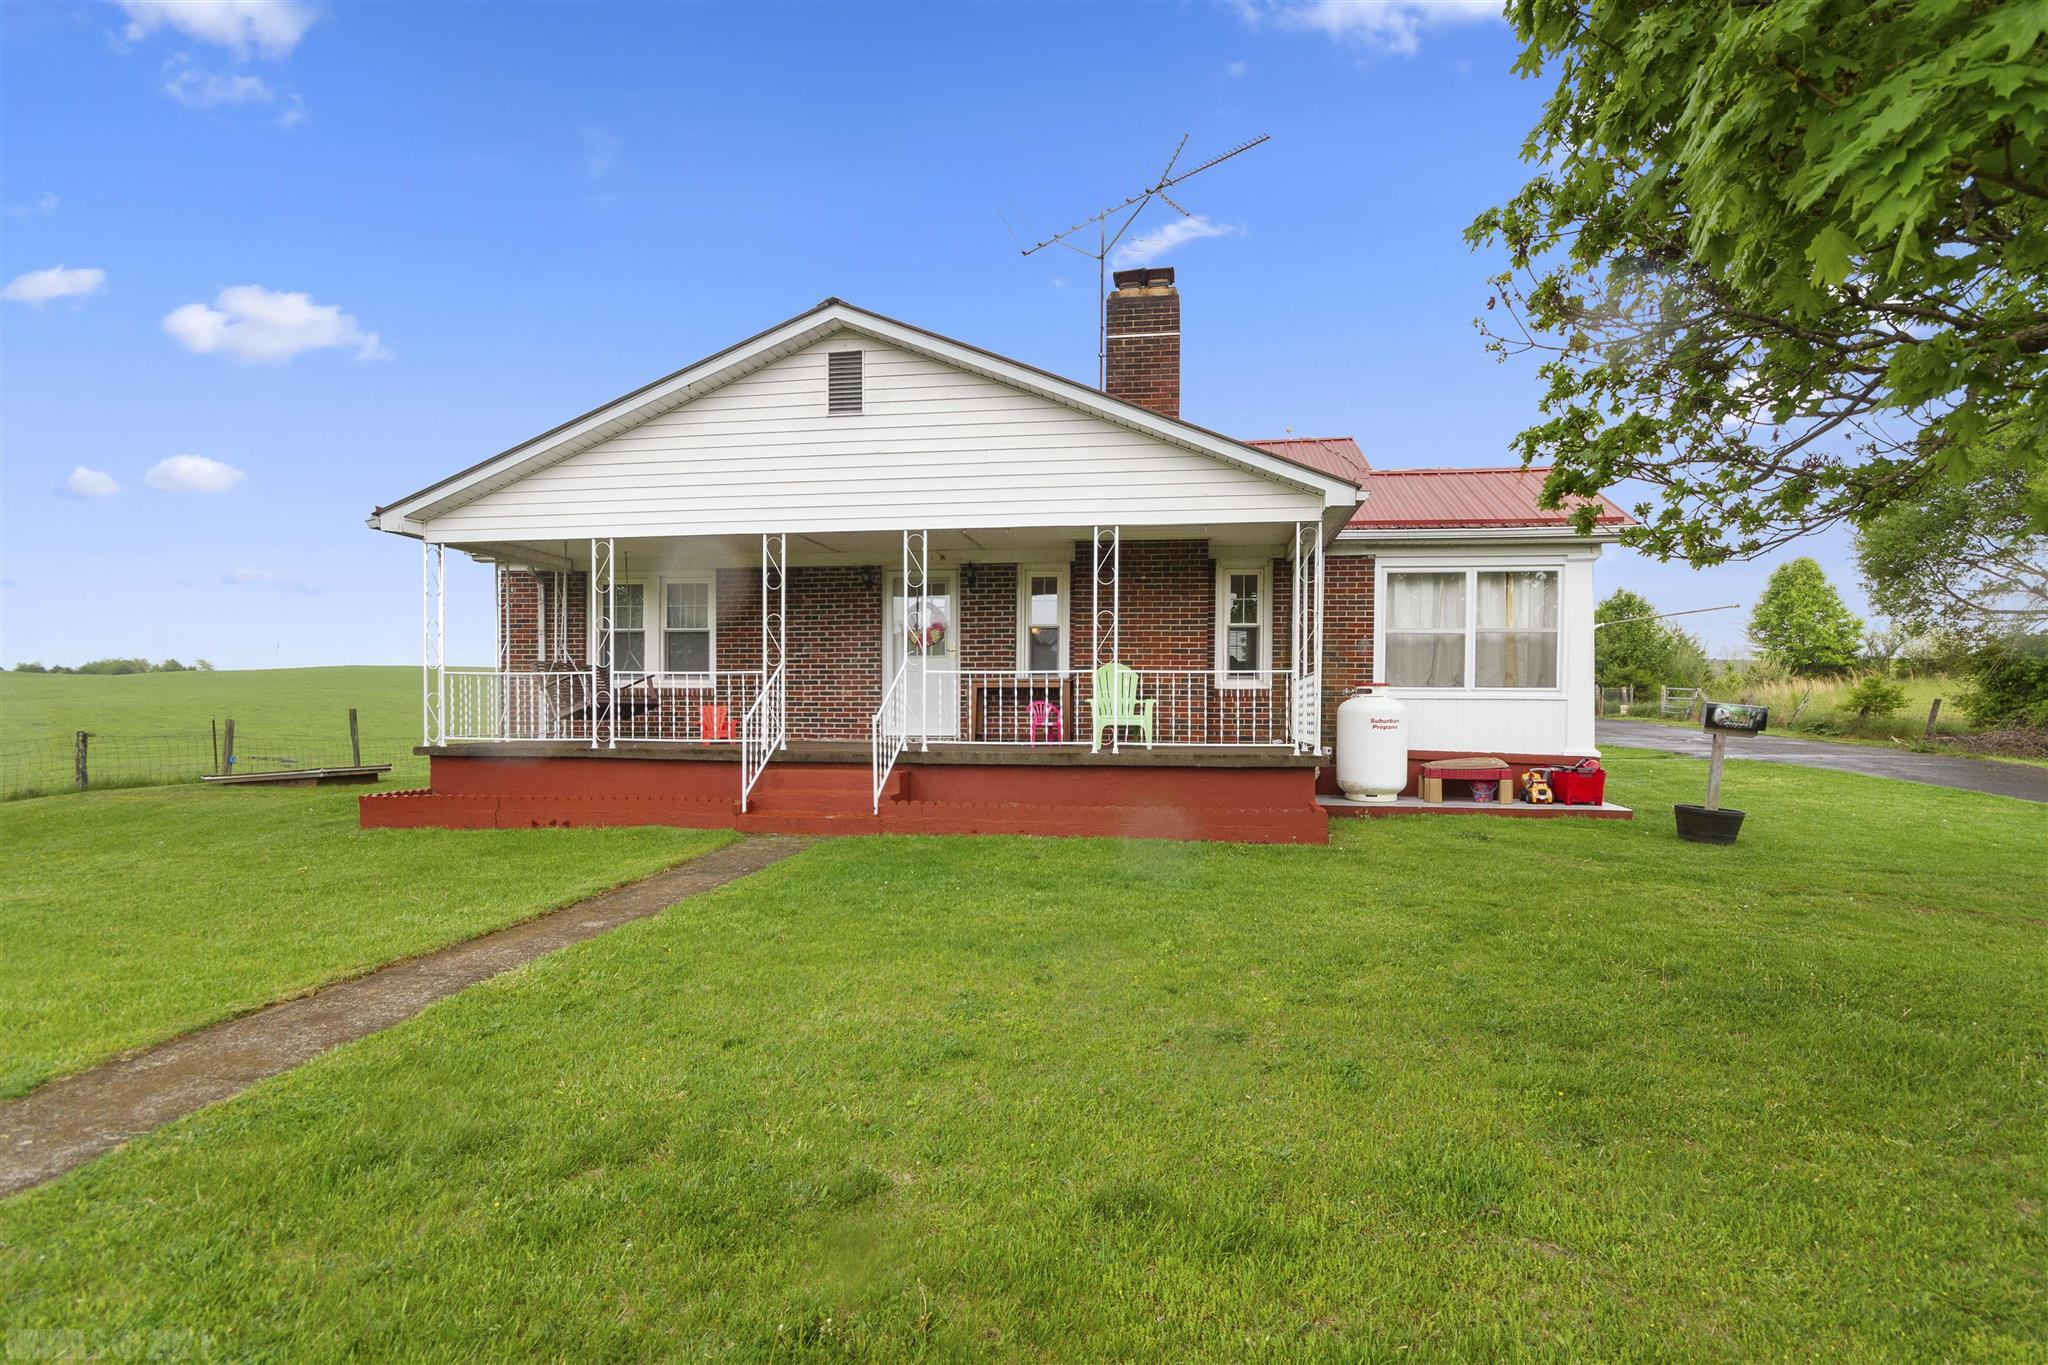 Charming brick ranch with 3.3 acres. Flowing floorplan features 2 bedroom and 2 full baths. (Additional bath/laundry area added in 2020). Living room with gas fireplace, formal dining room, floored attic with SO much storage space, mudroom and bonus sunroom. Metal roof, newer heat pump (2019) covered front porch, detached garage, partial basement and several outbuildings. Electrical box upgraded in 2019, interior painted over the last several years, exterior walls (sunroom) and basement painted 2021.